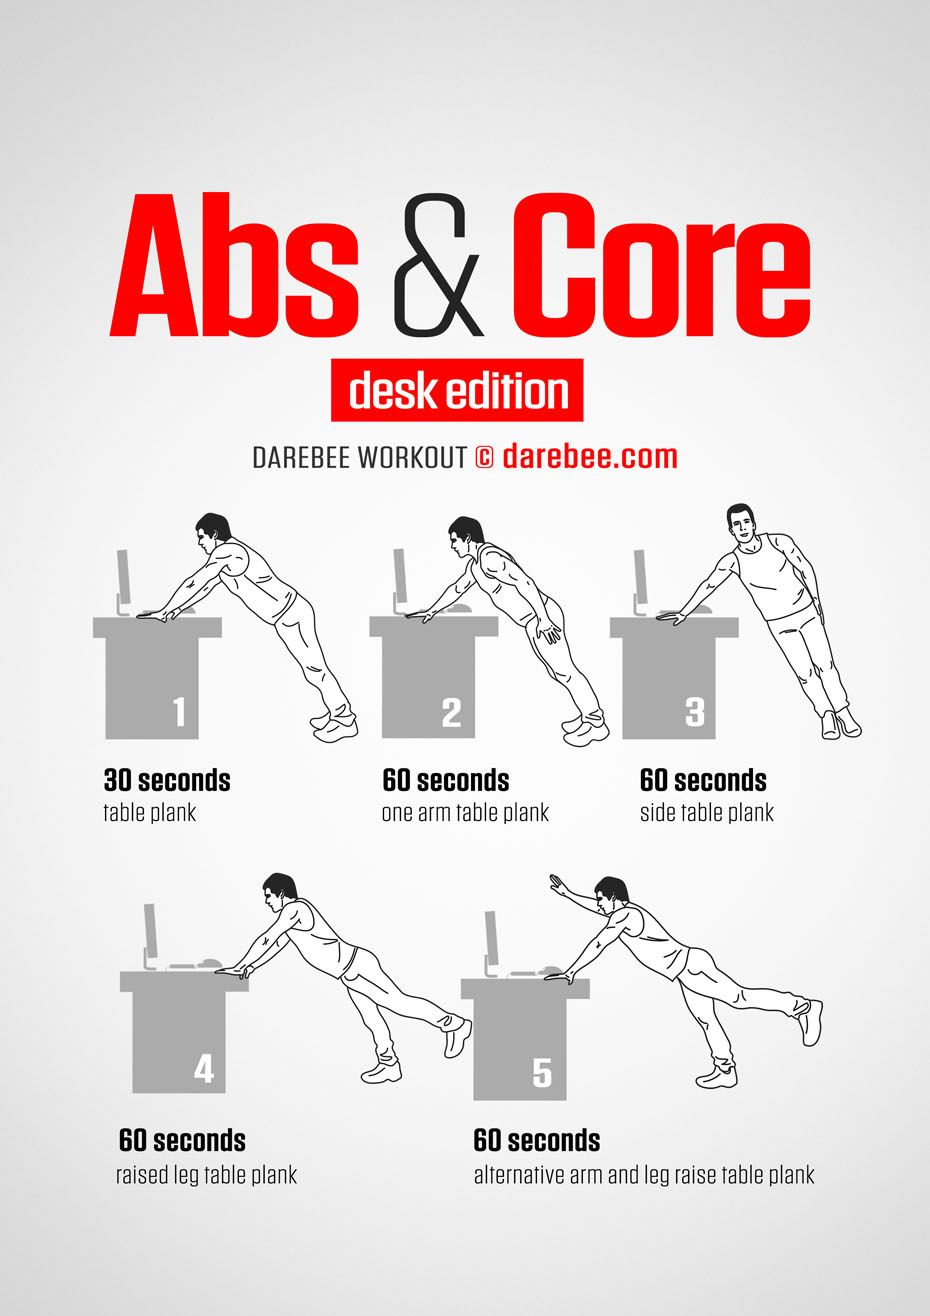 Abs Core Workout Posted By Newhowtolosebellyfat